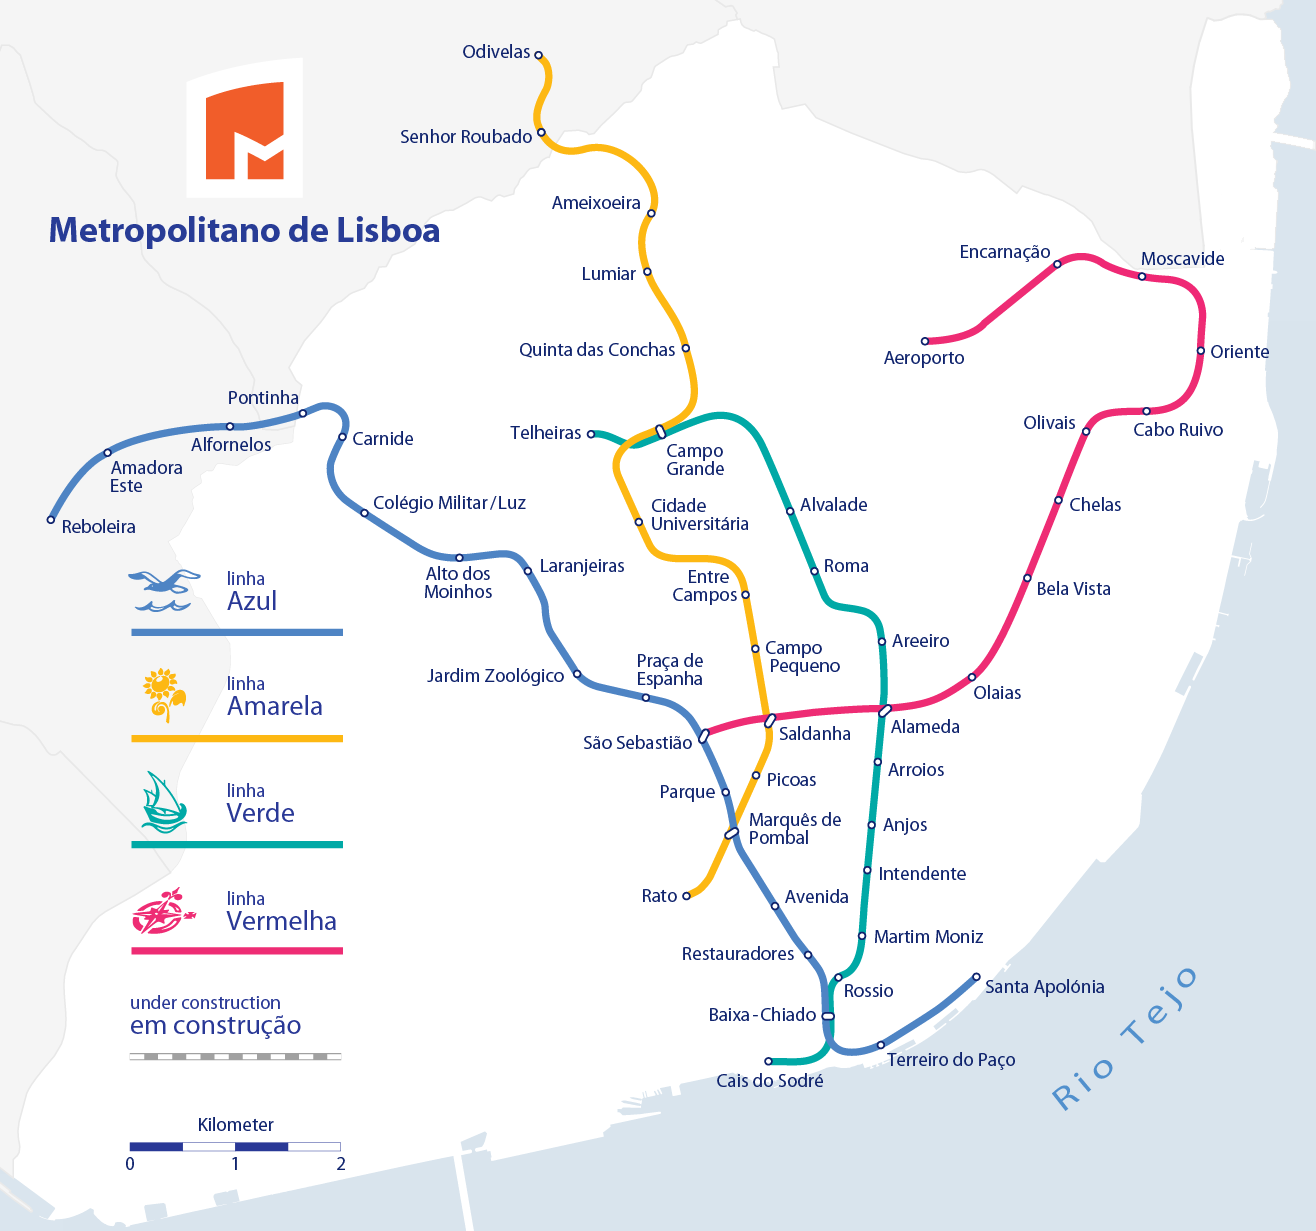 Lisbon Metro - Wikipedia, the free encyclopedia